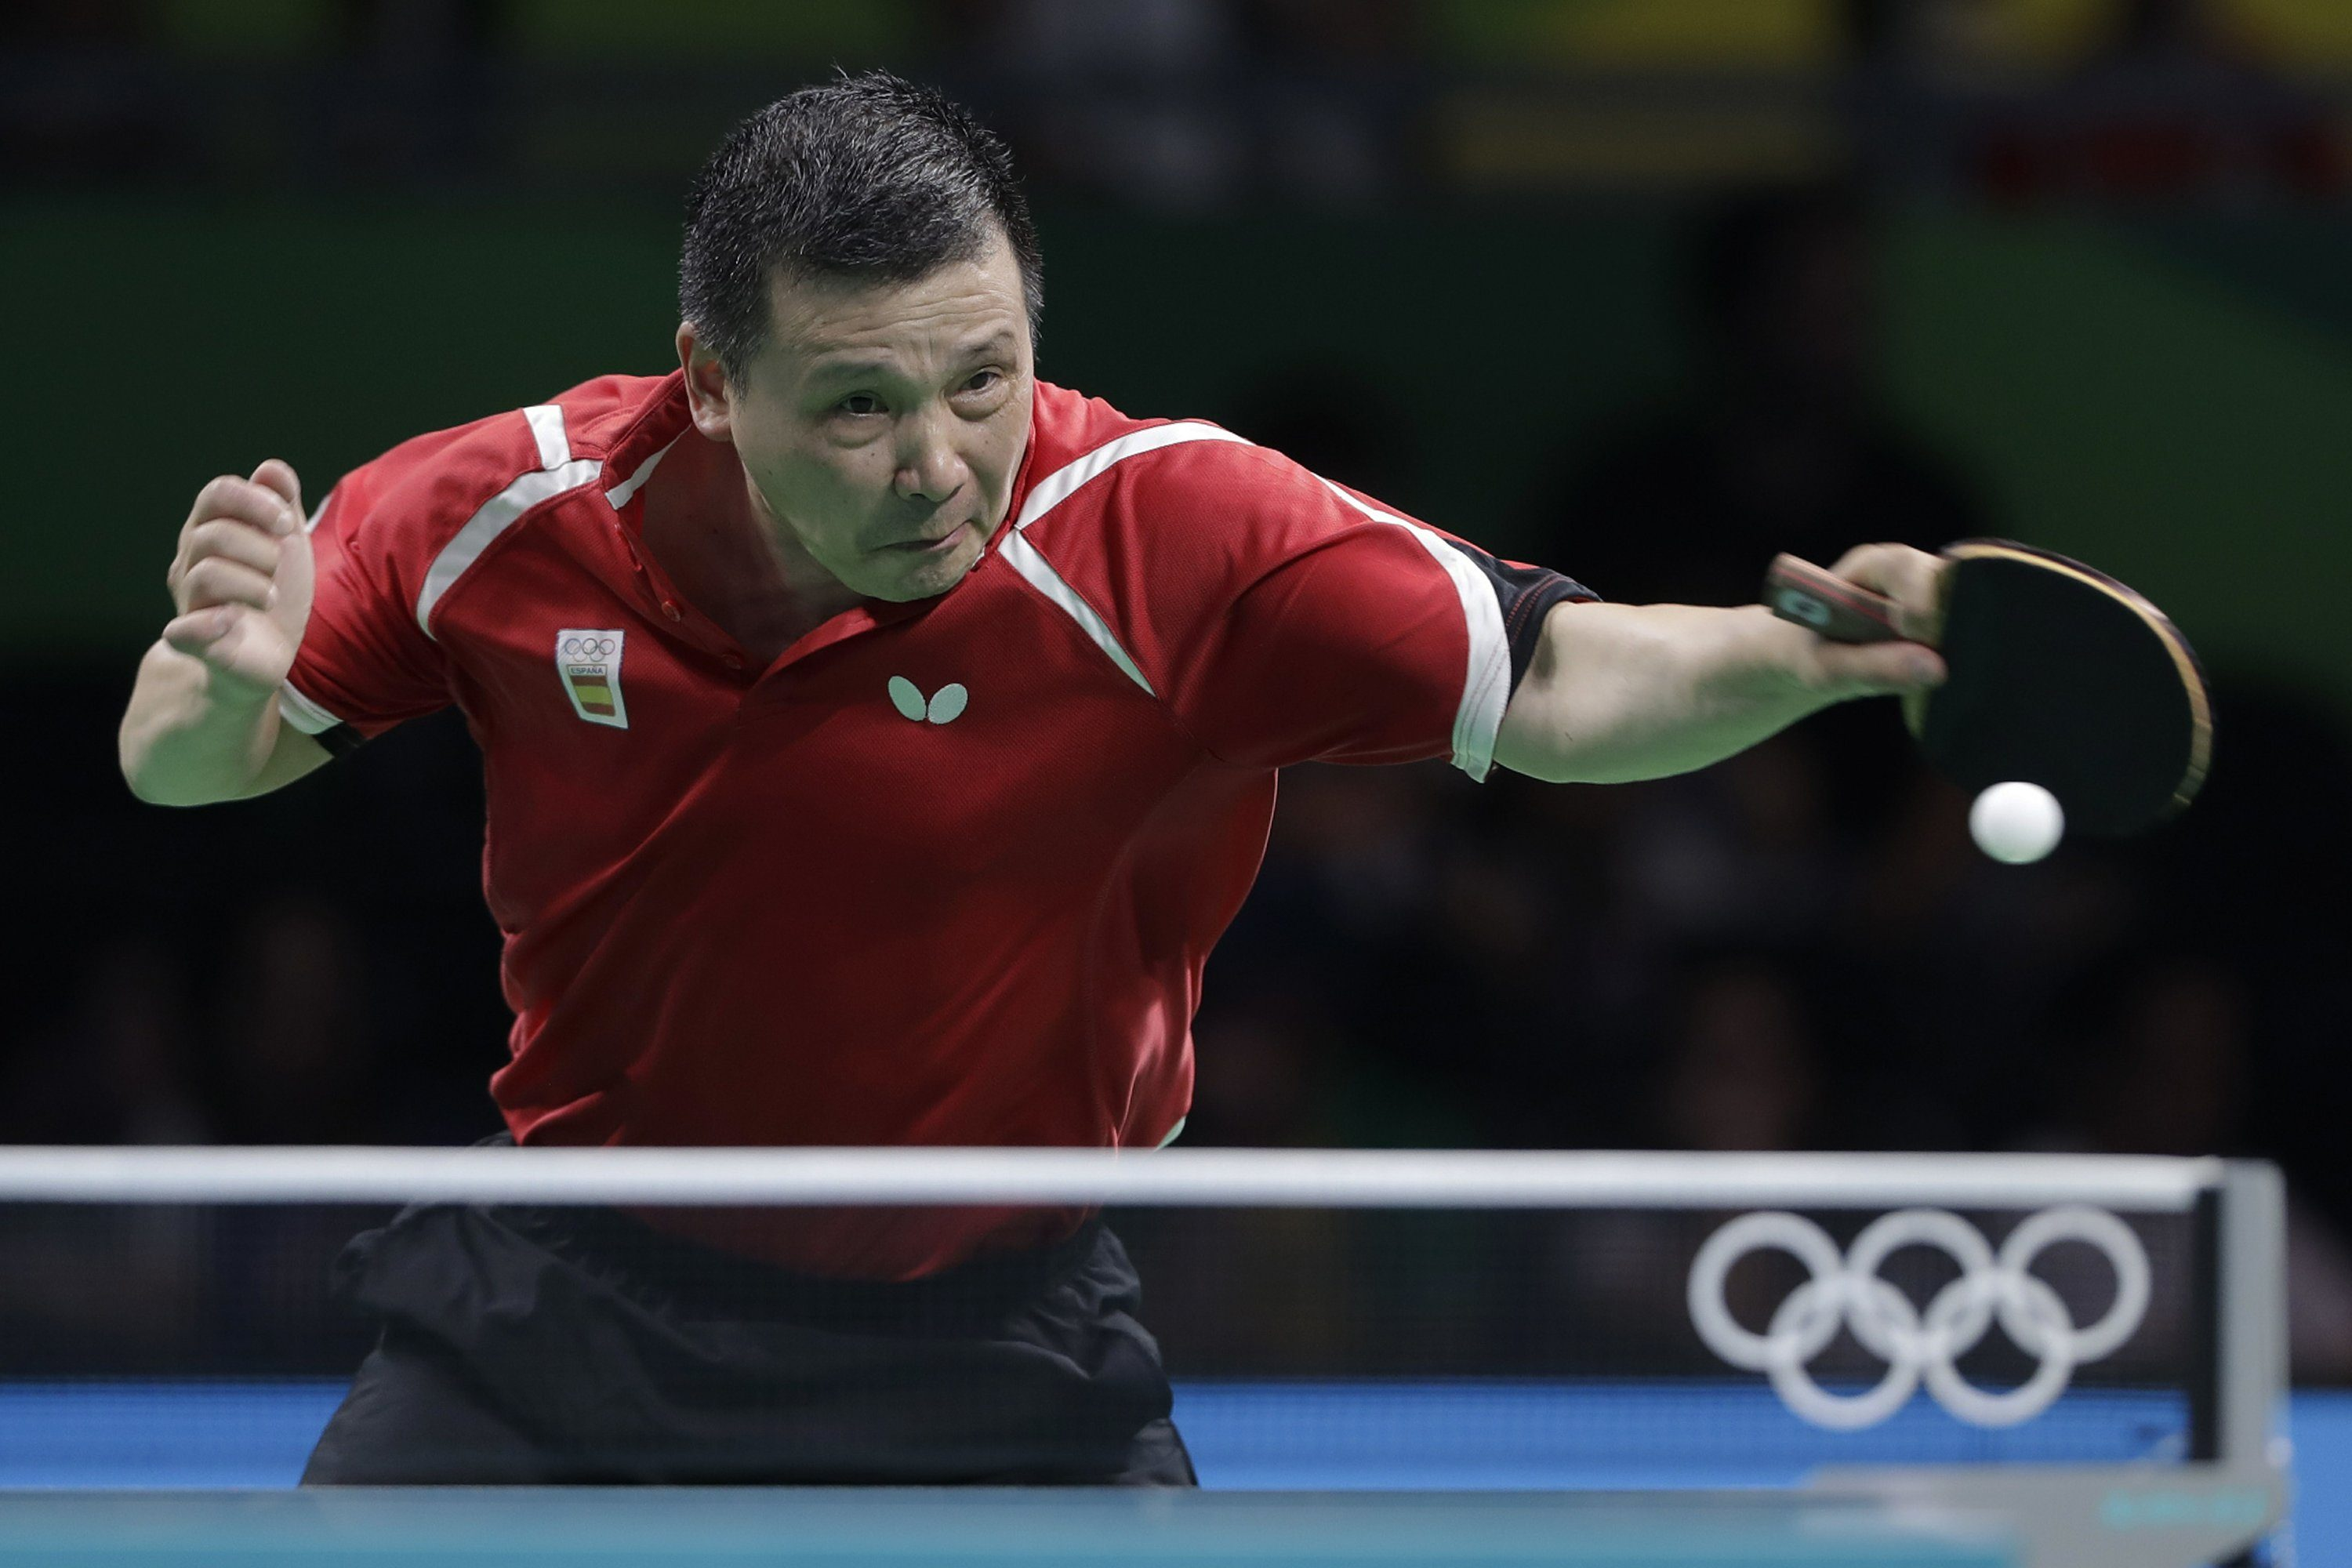 Ukrainian table tennis alert